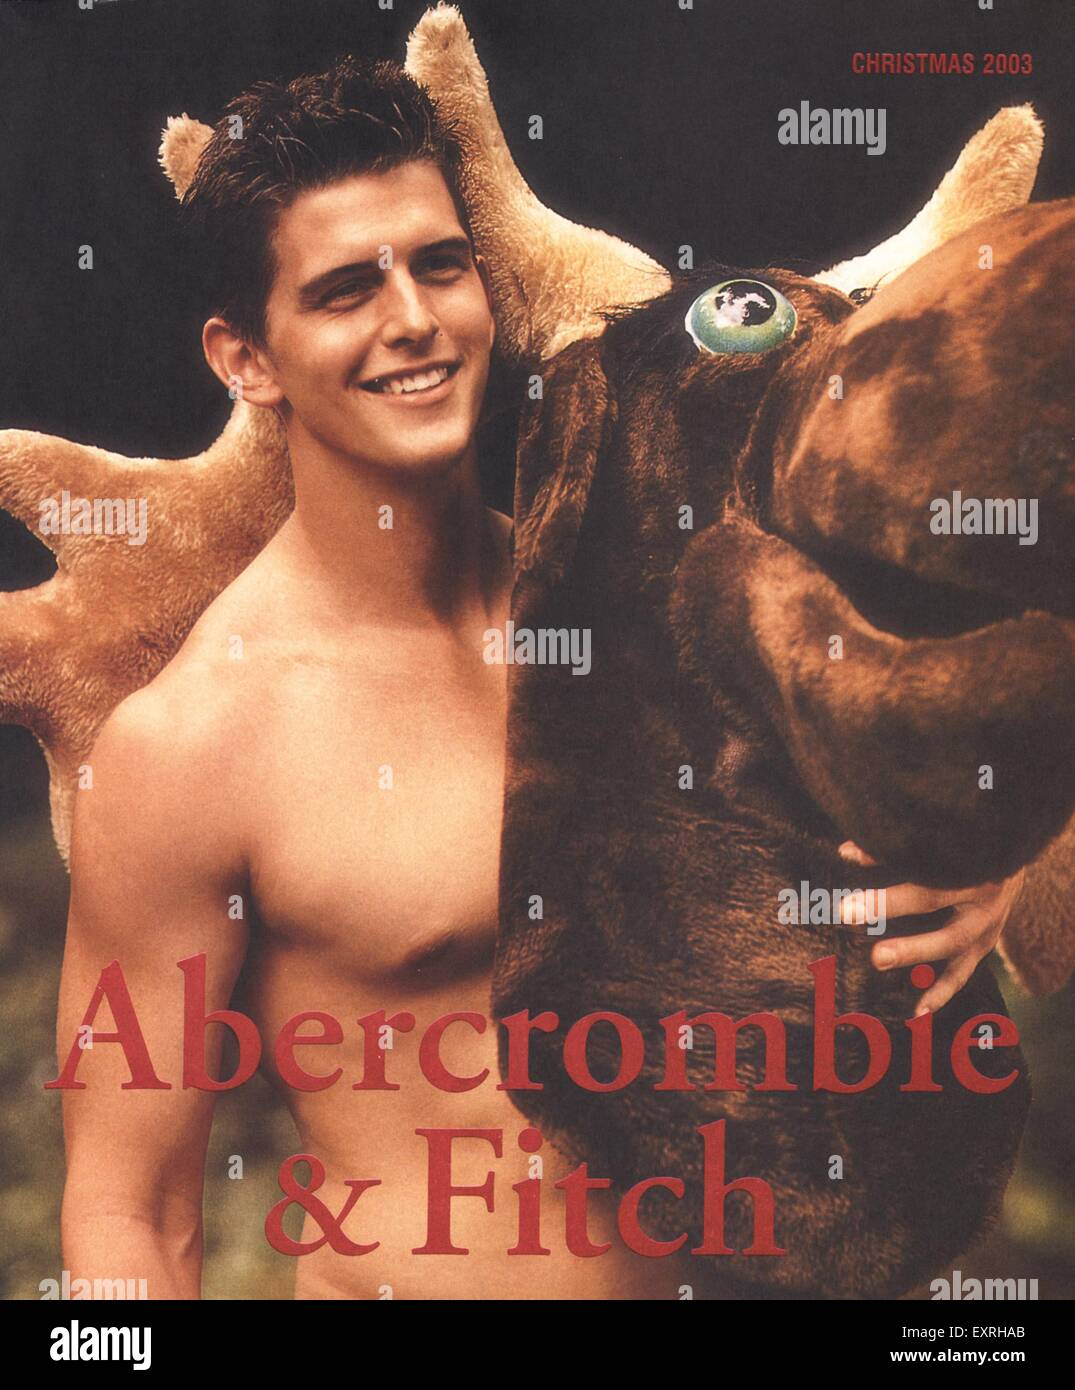 The Rise And Fall Of Abercrombie Fitch My Fashion Tech Hub